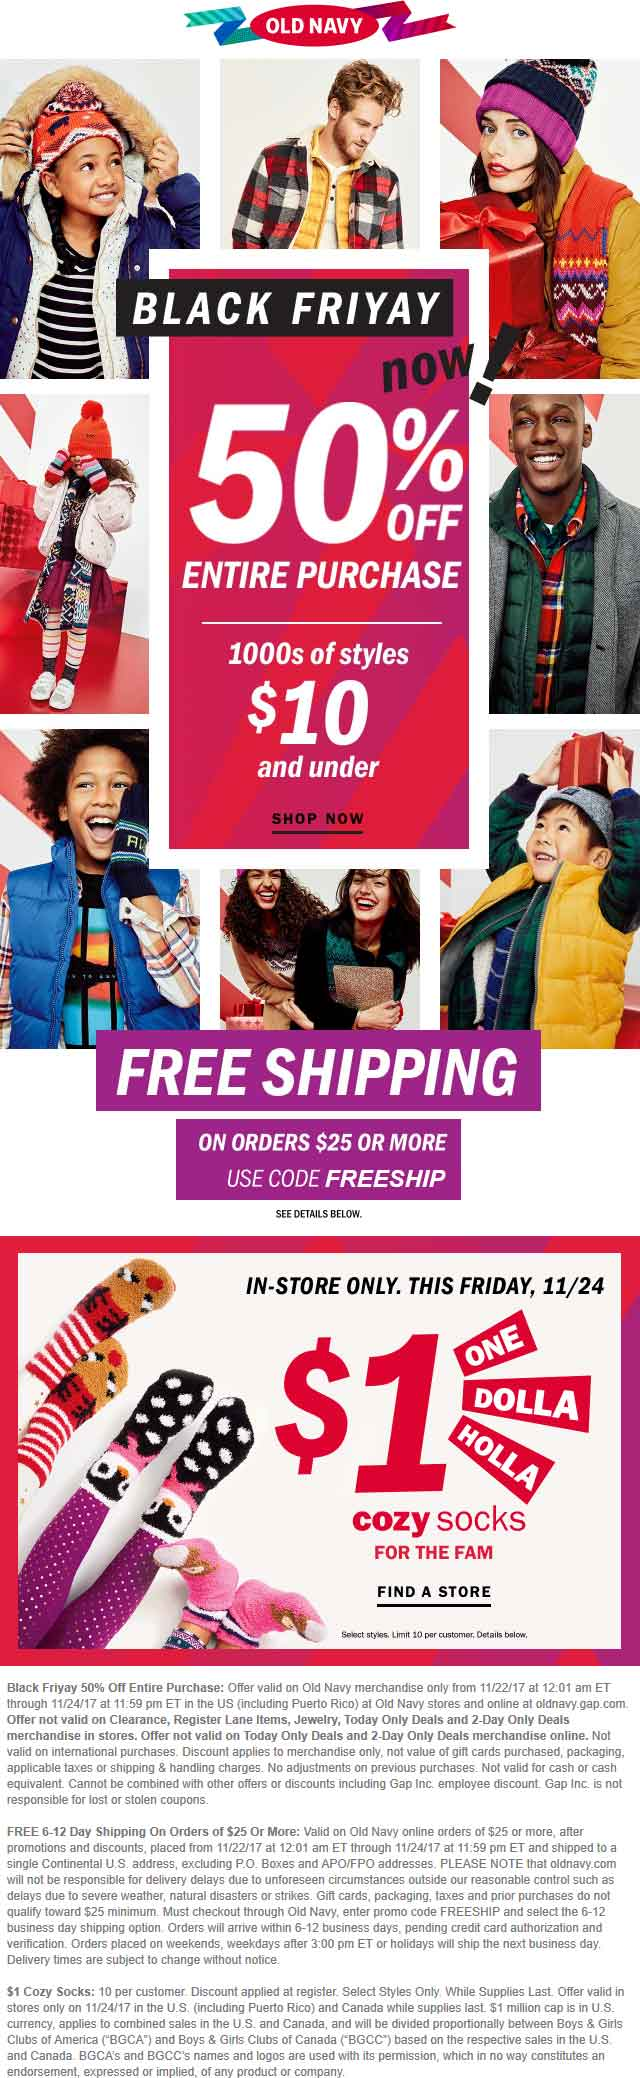 Old Navy Coupon June 2018 50% off everything at Old Navy, ditto online